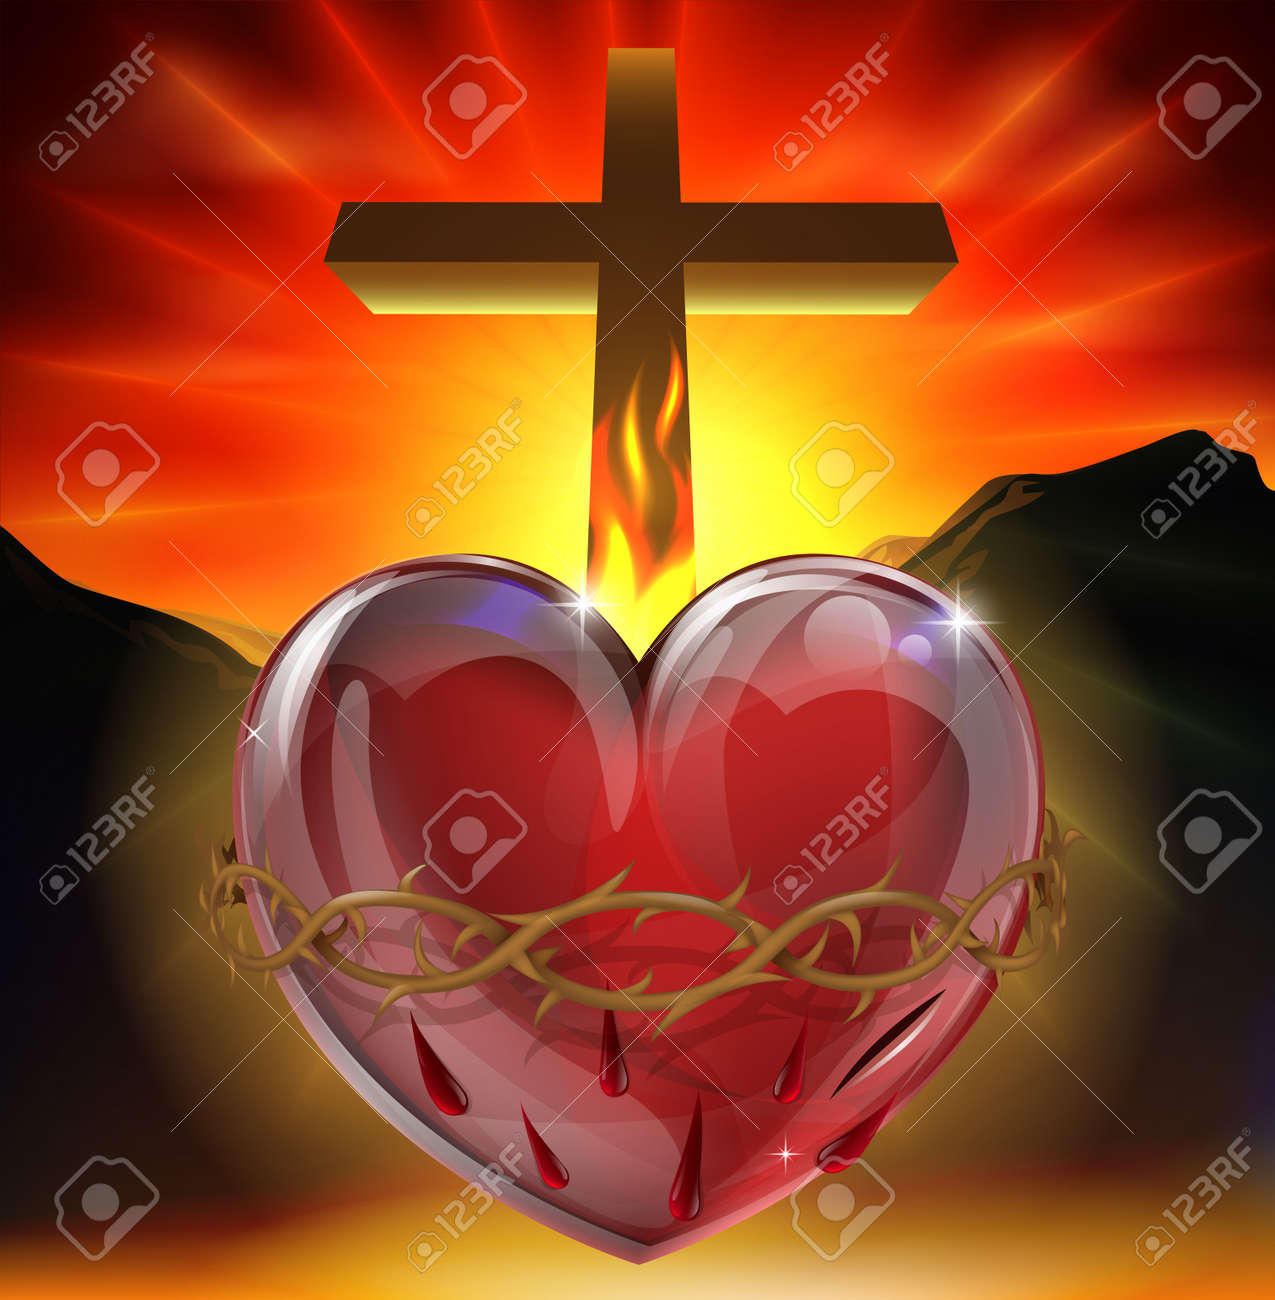 Illustration of the Christian symbol of the sacred heart. A heart shining with divine light with crown of thorns, lance wound and flame representing divine love. - 14052158